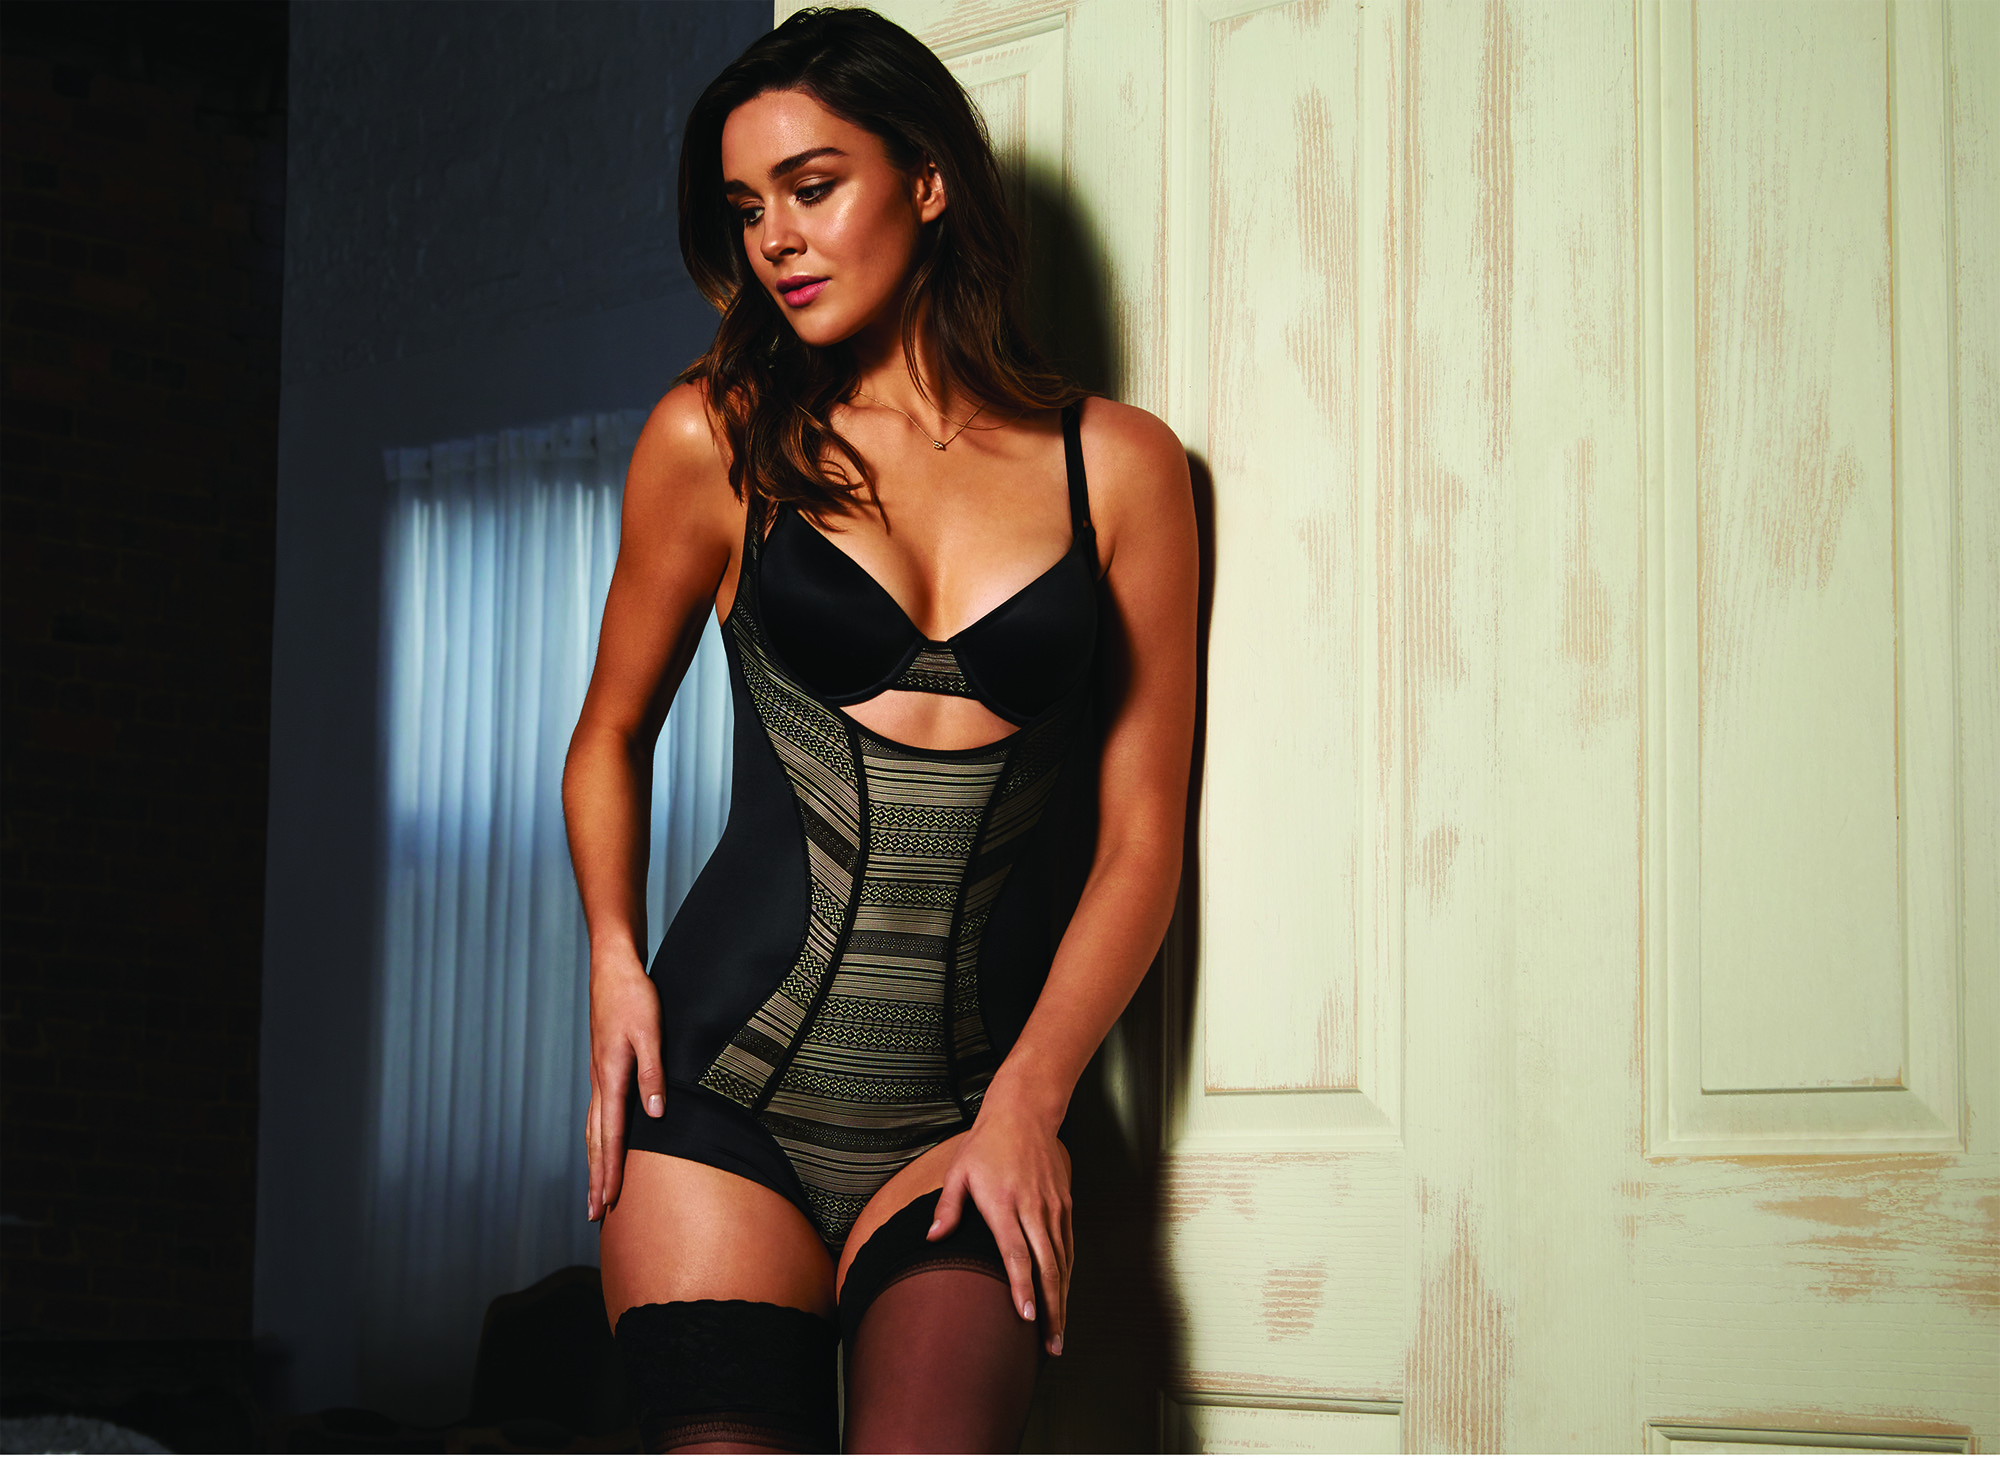 57eb6647a0 Home page - Bodesire Lingerie Boutique